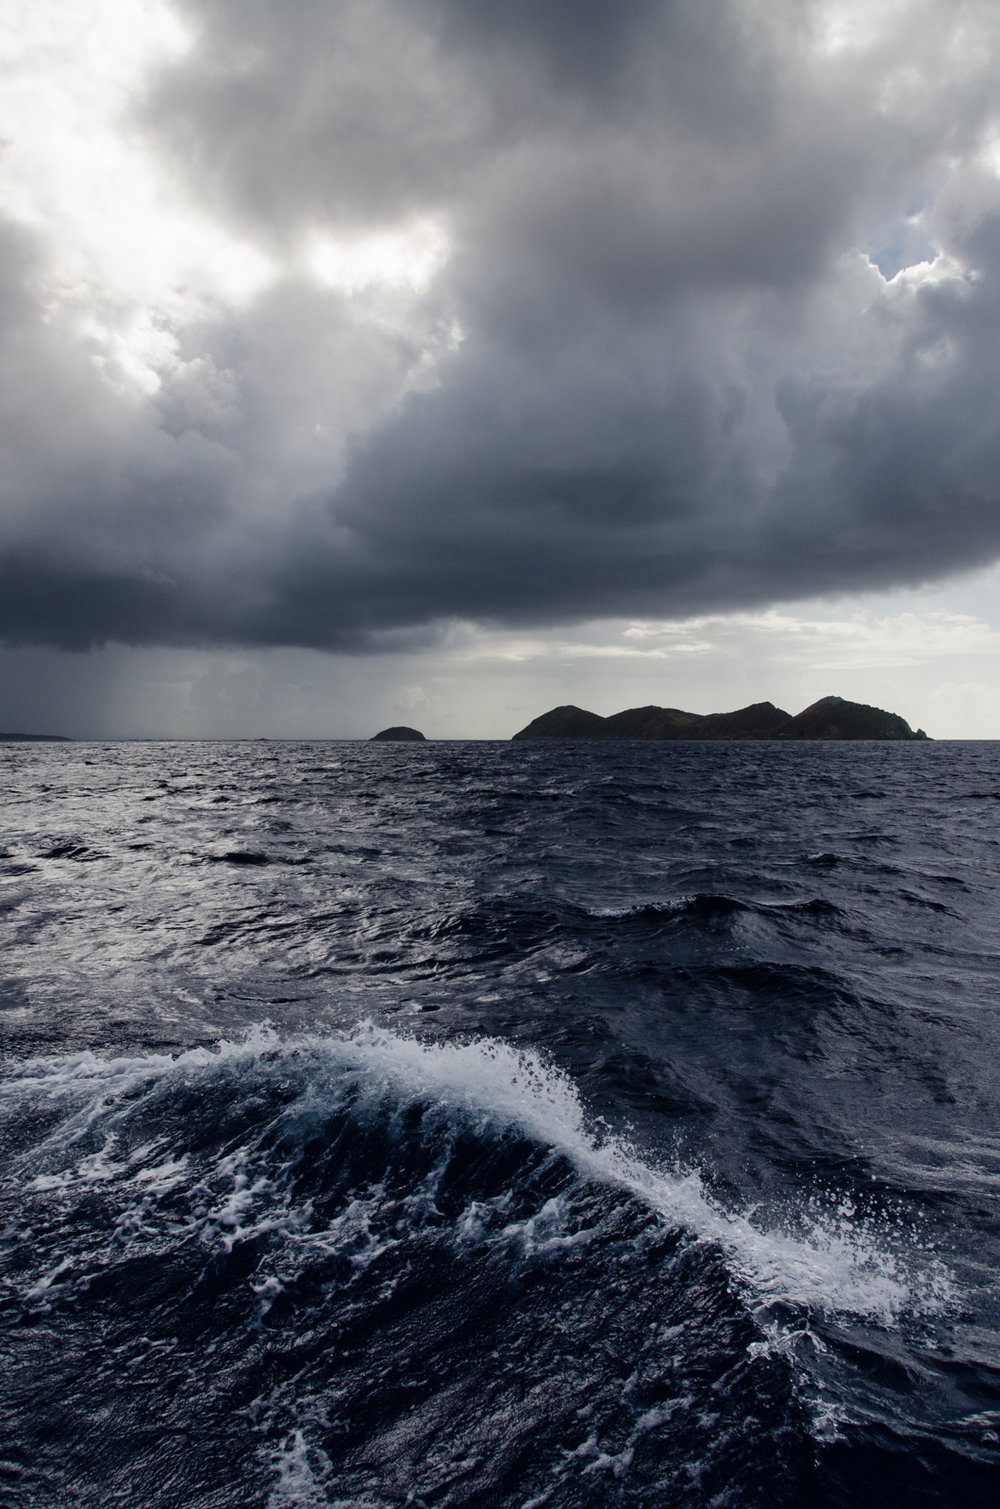 Captain Bob slid us into Virgin Gorda just behind this storm. We didn't feel a drop.